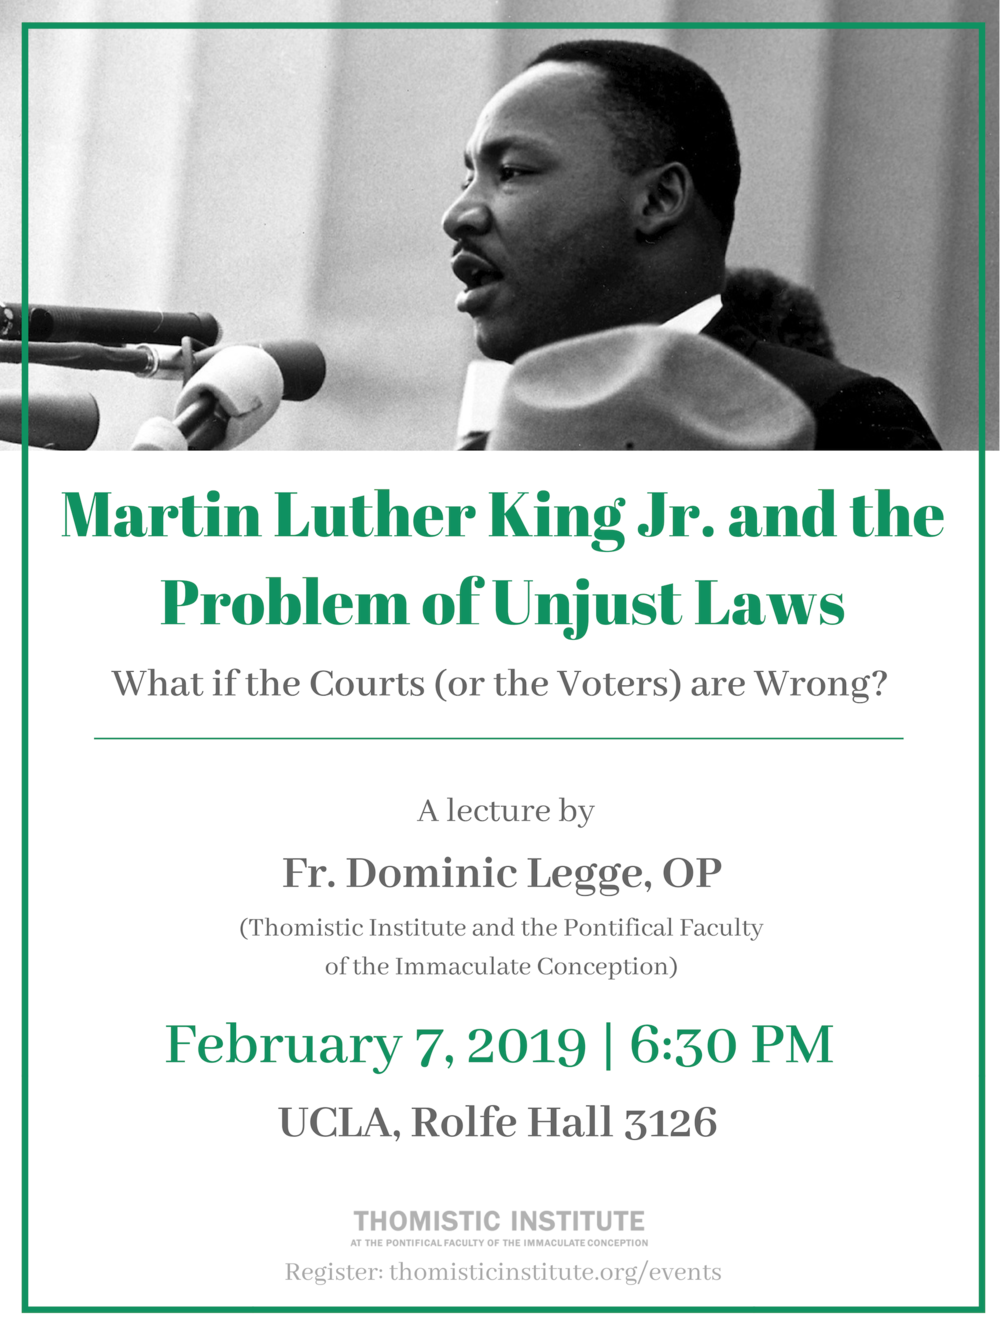 """_Martin Luther King Jr and the Problem of Unjust Laws_ What if the Courts (or the Voters) are Wrong_"""".png"""